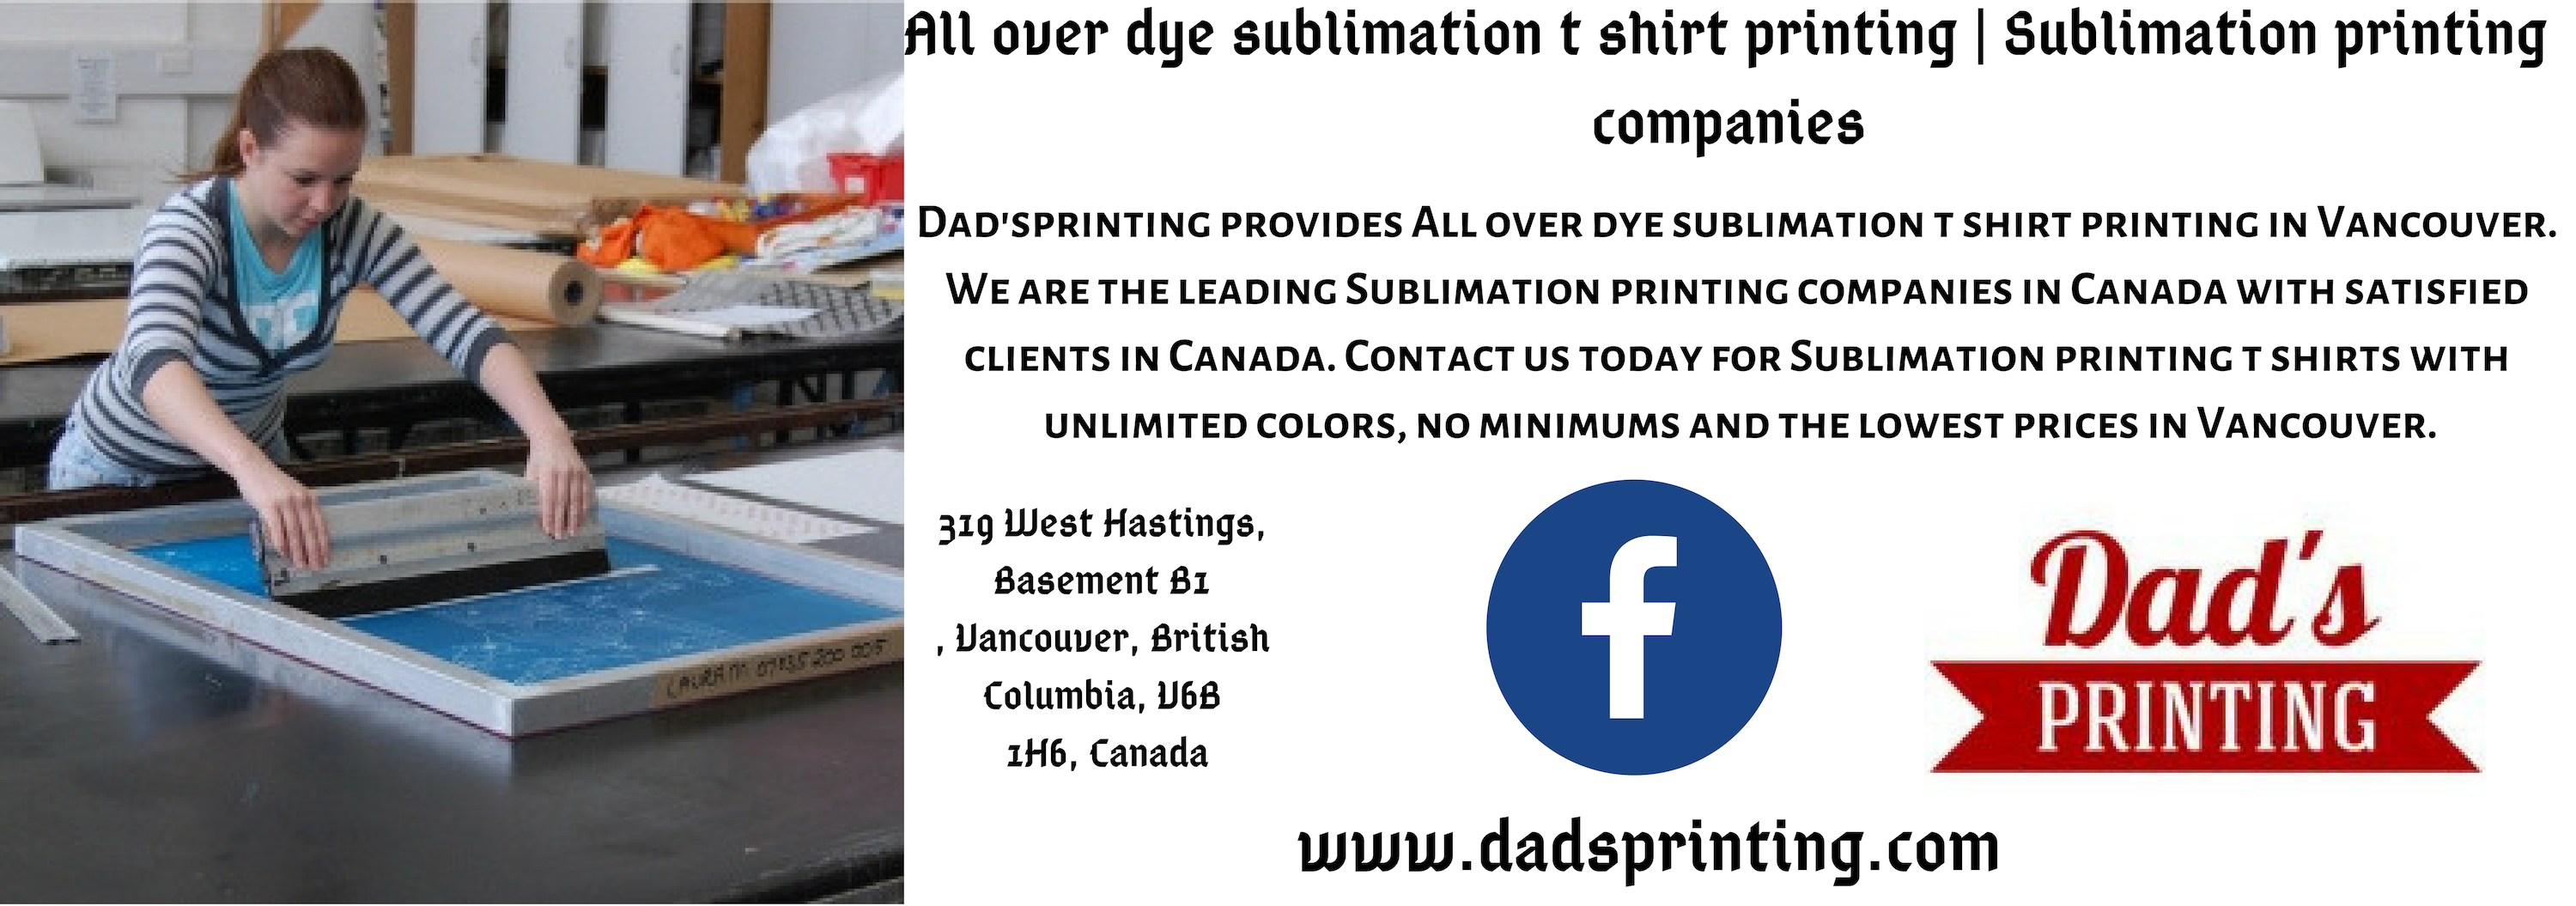 Dad'sprinting provides All over dye sublimation t shirt